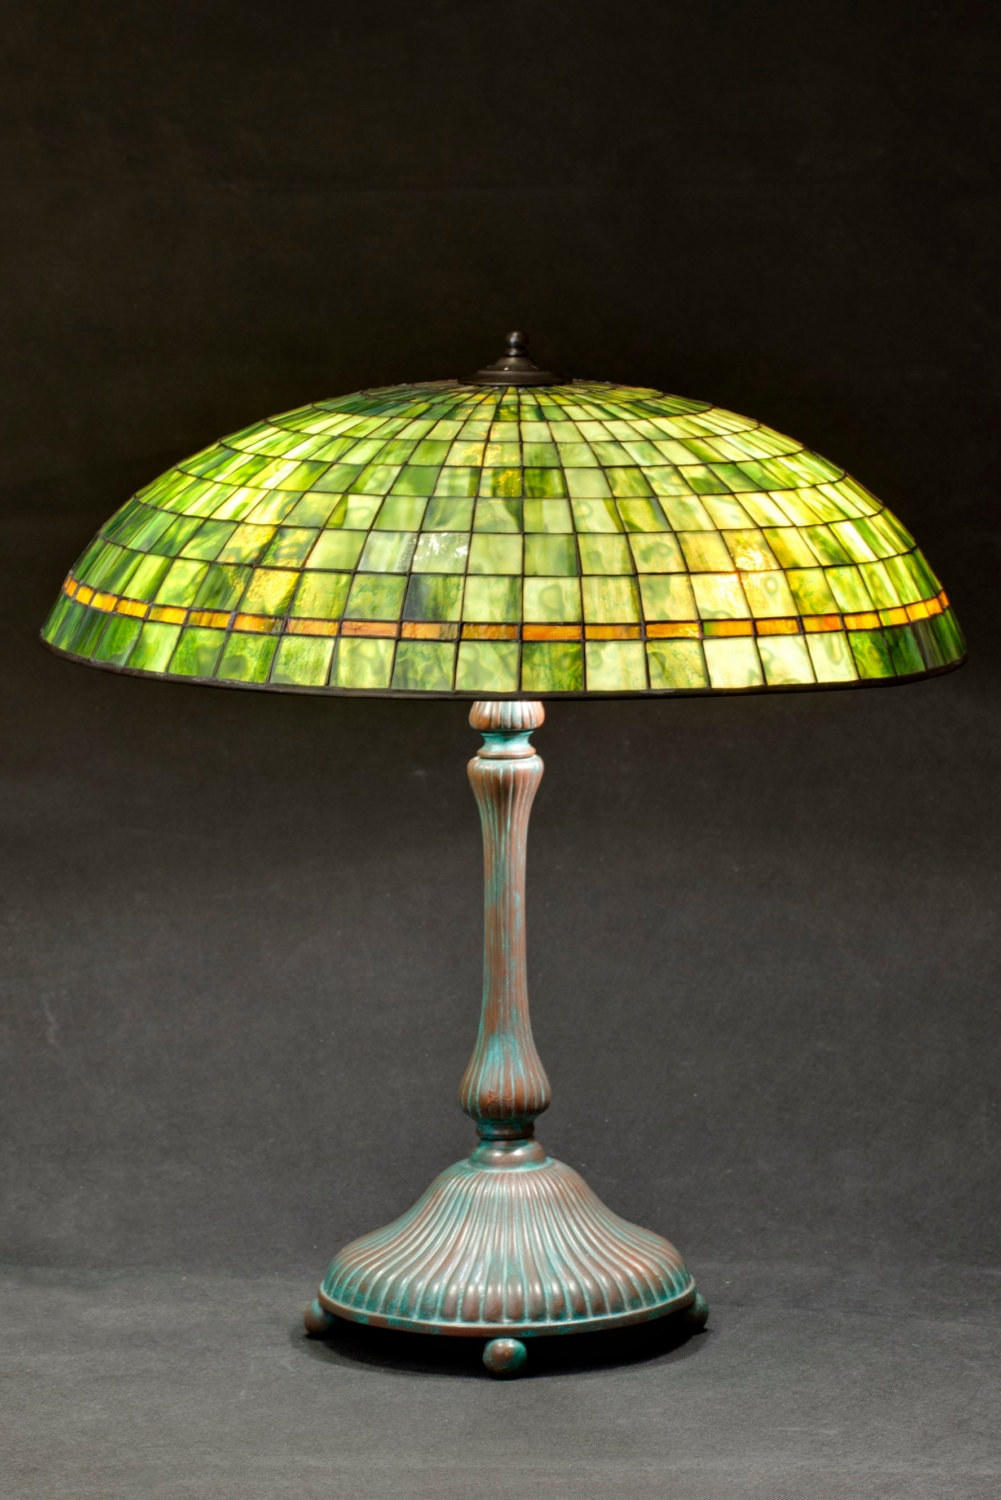 green lamp shade stained glass lamp office decor home. Black Bedroom Furniture Sets. Home Design Ideas